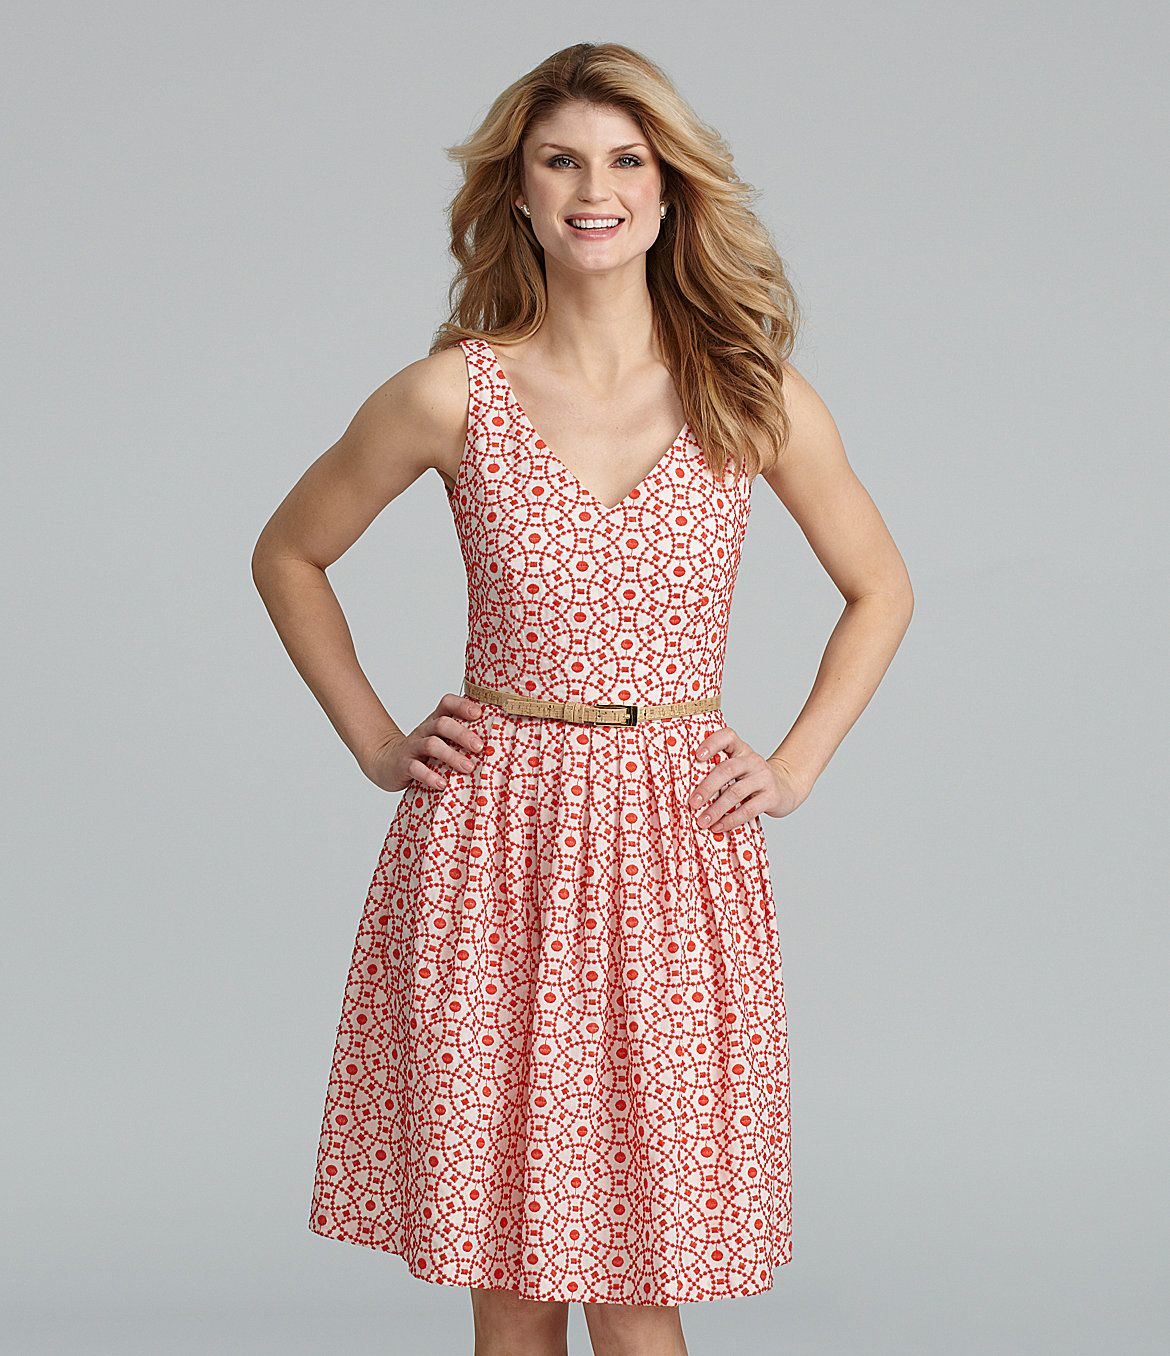 Gread dress from Dillards! | Outfits | Pinterest